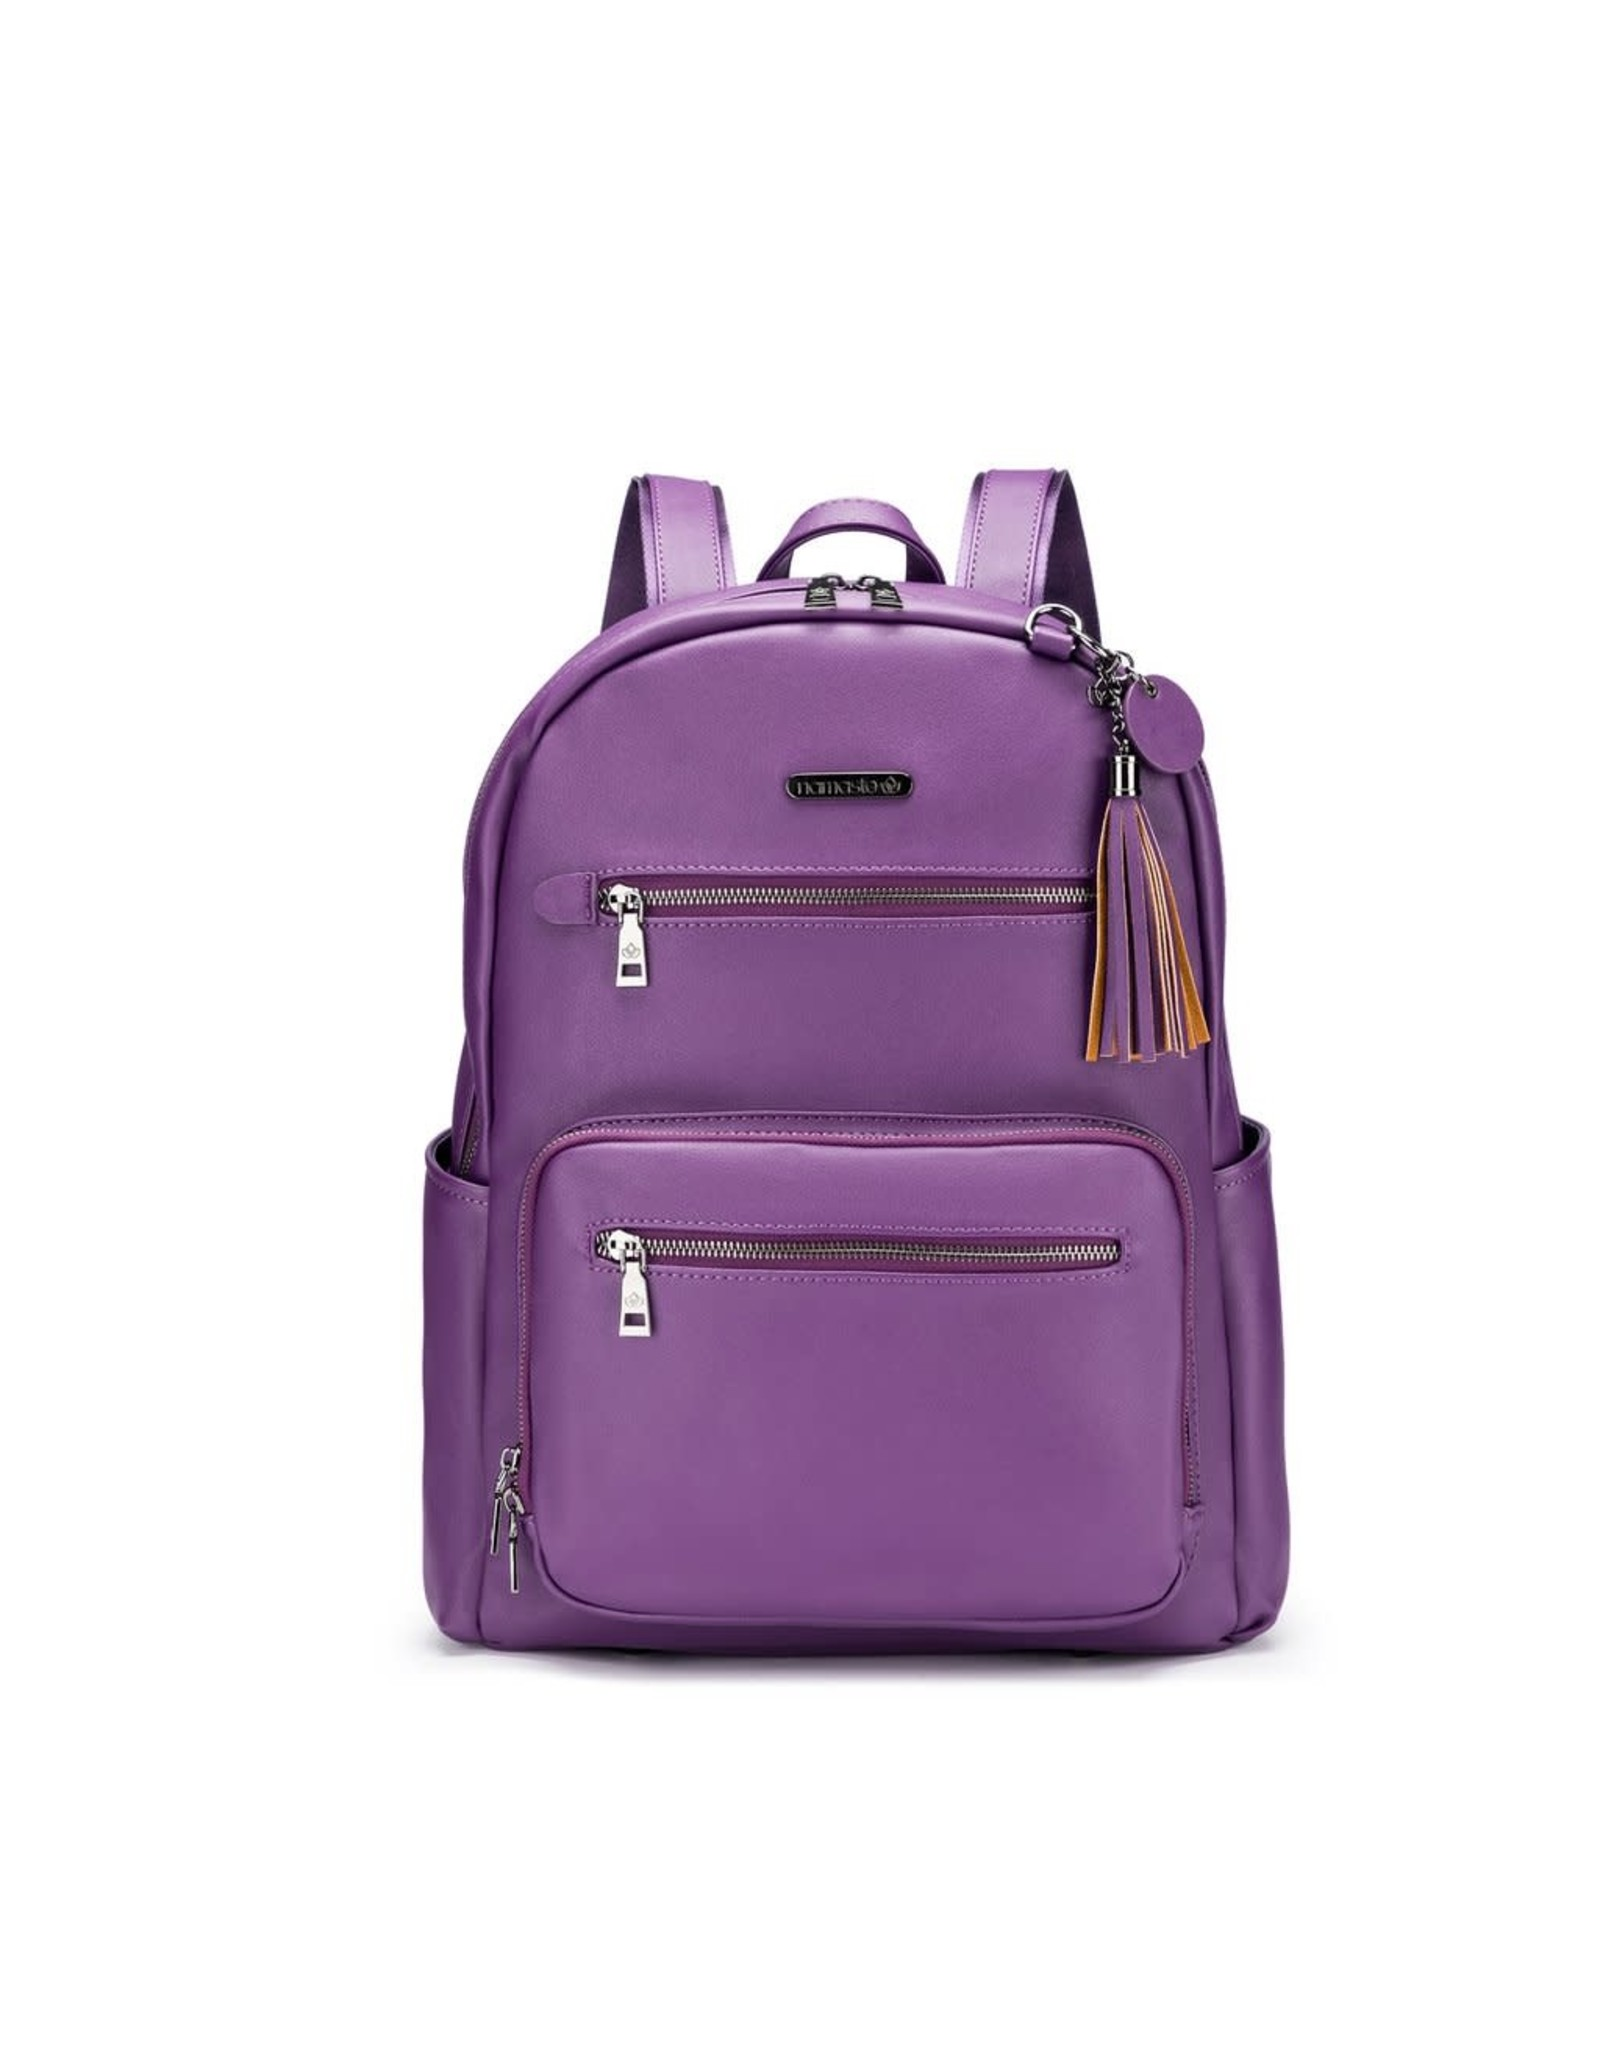 Namaste Maker's Backpack Purple